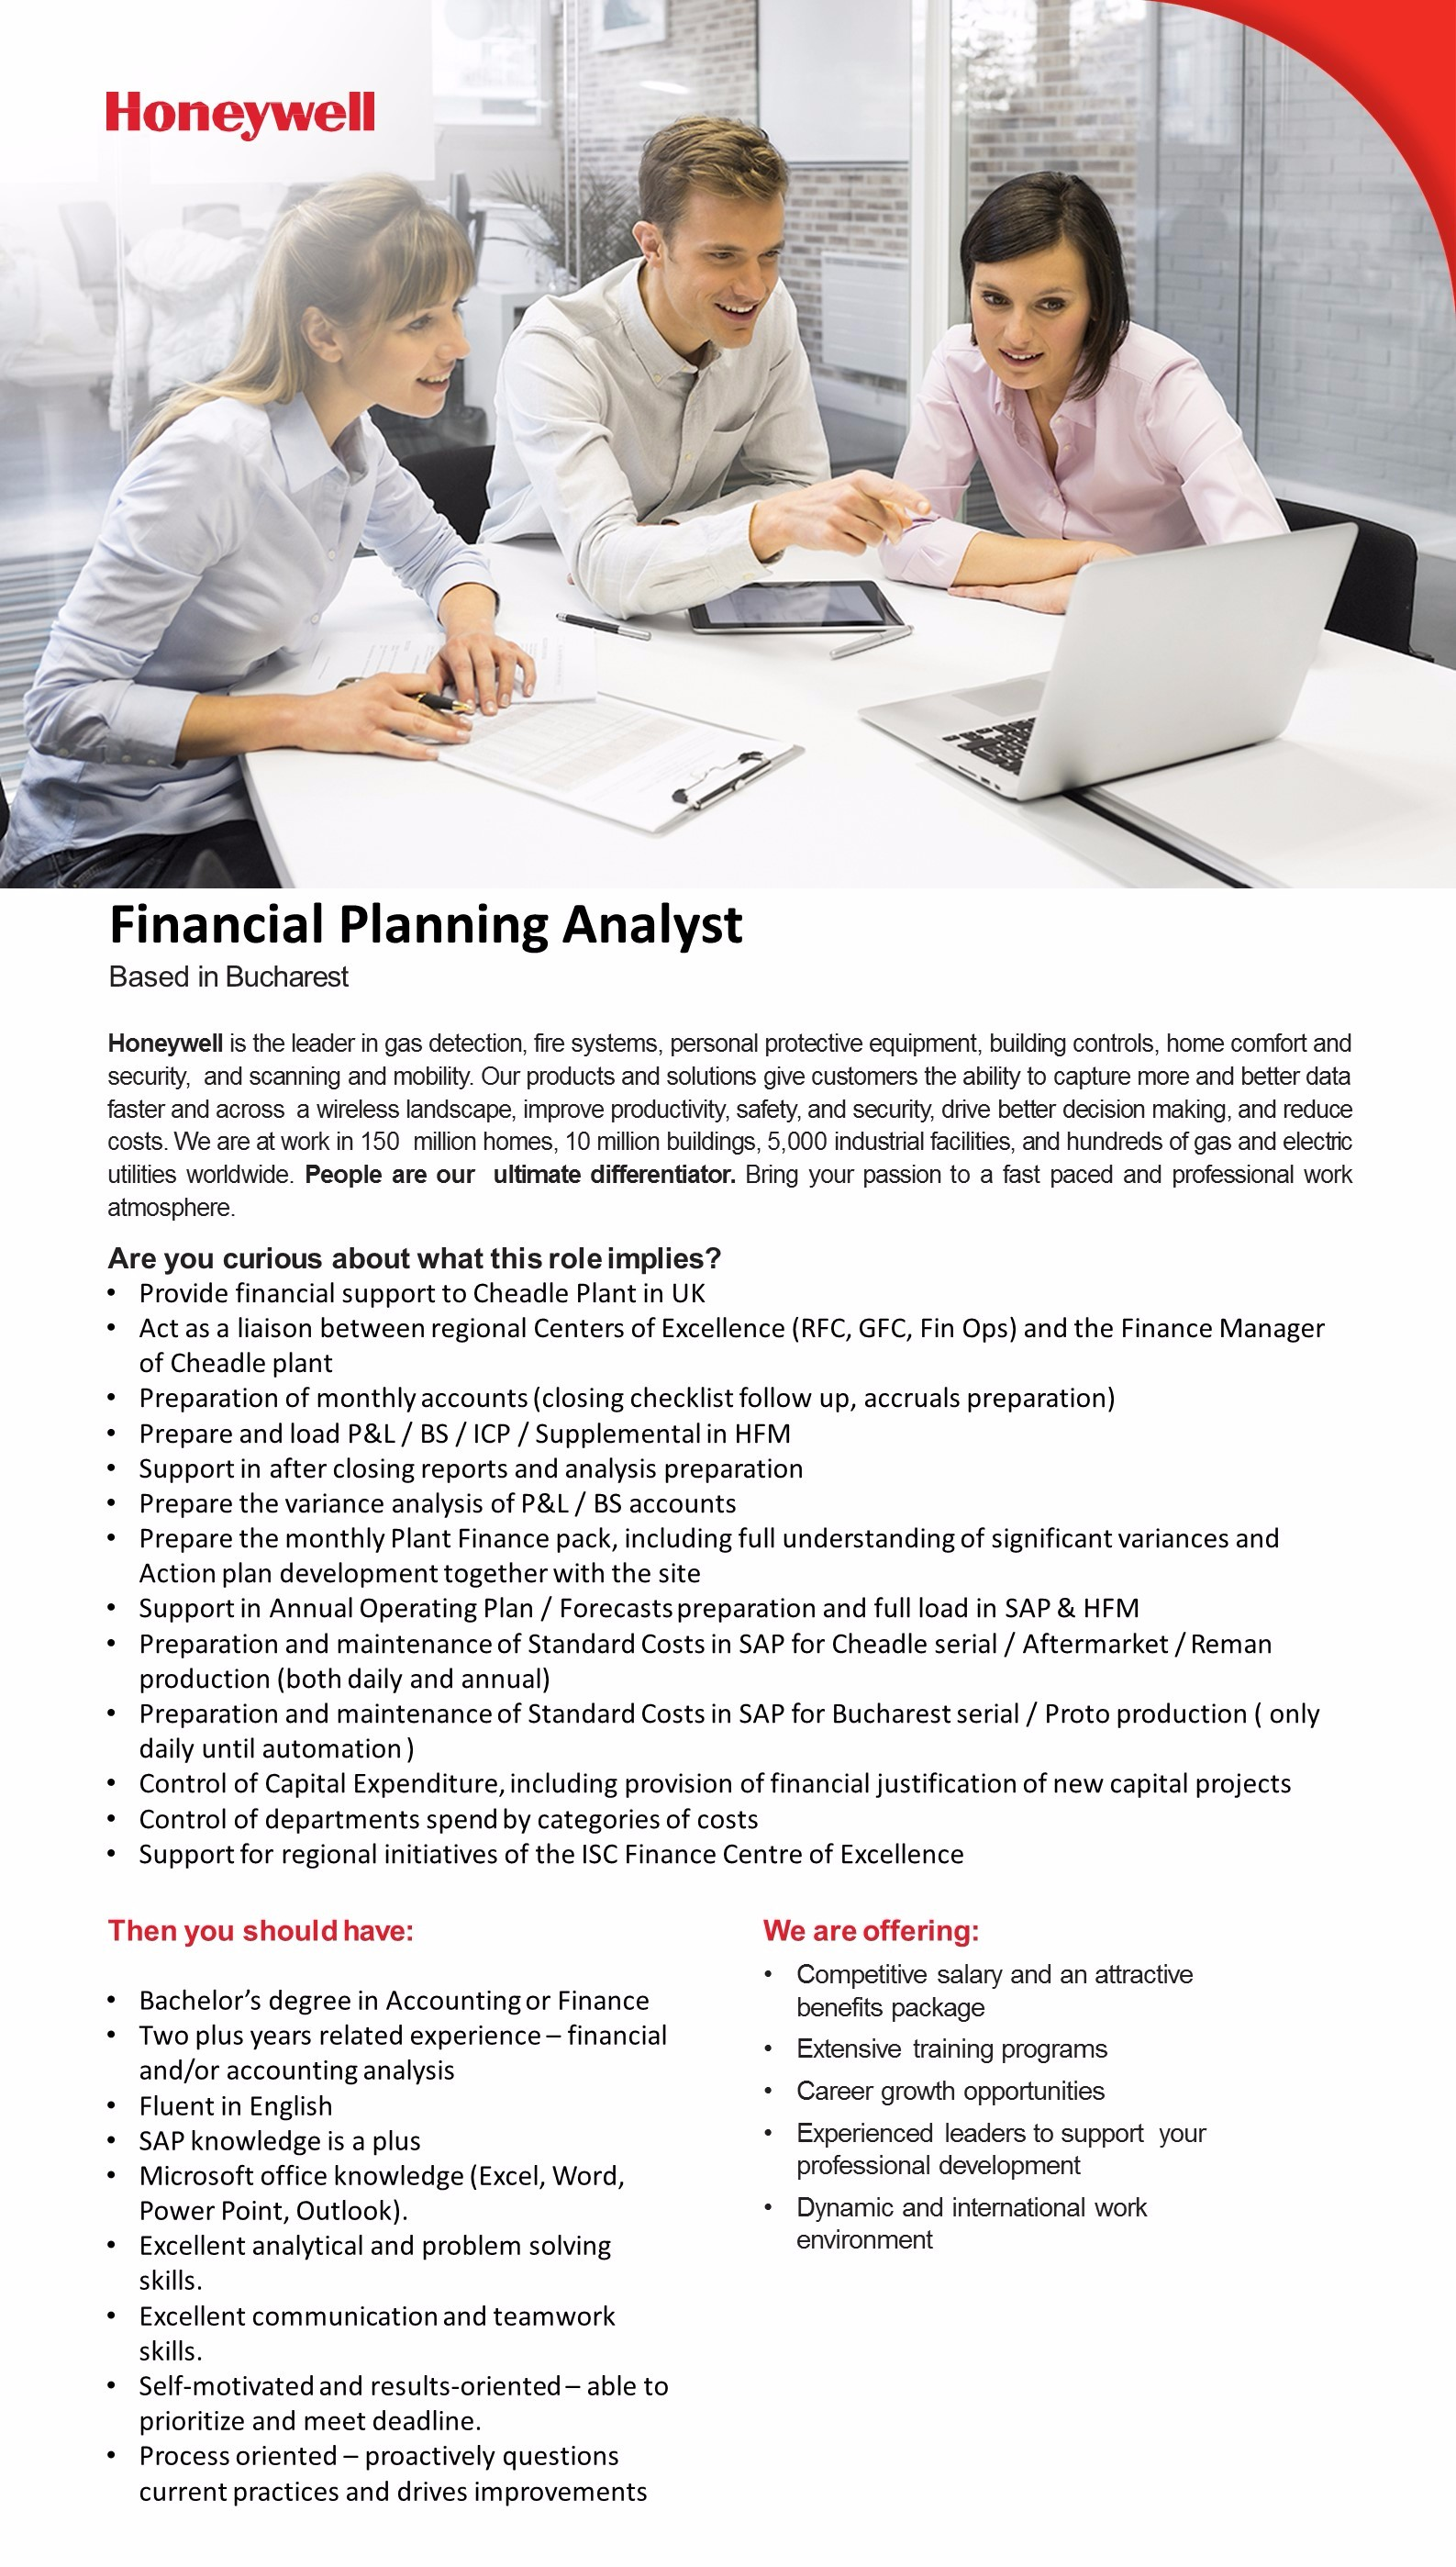 Financial Planning Analyst